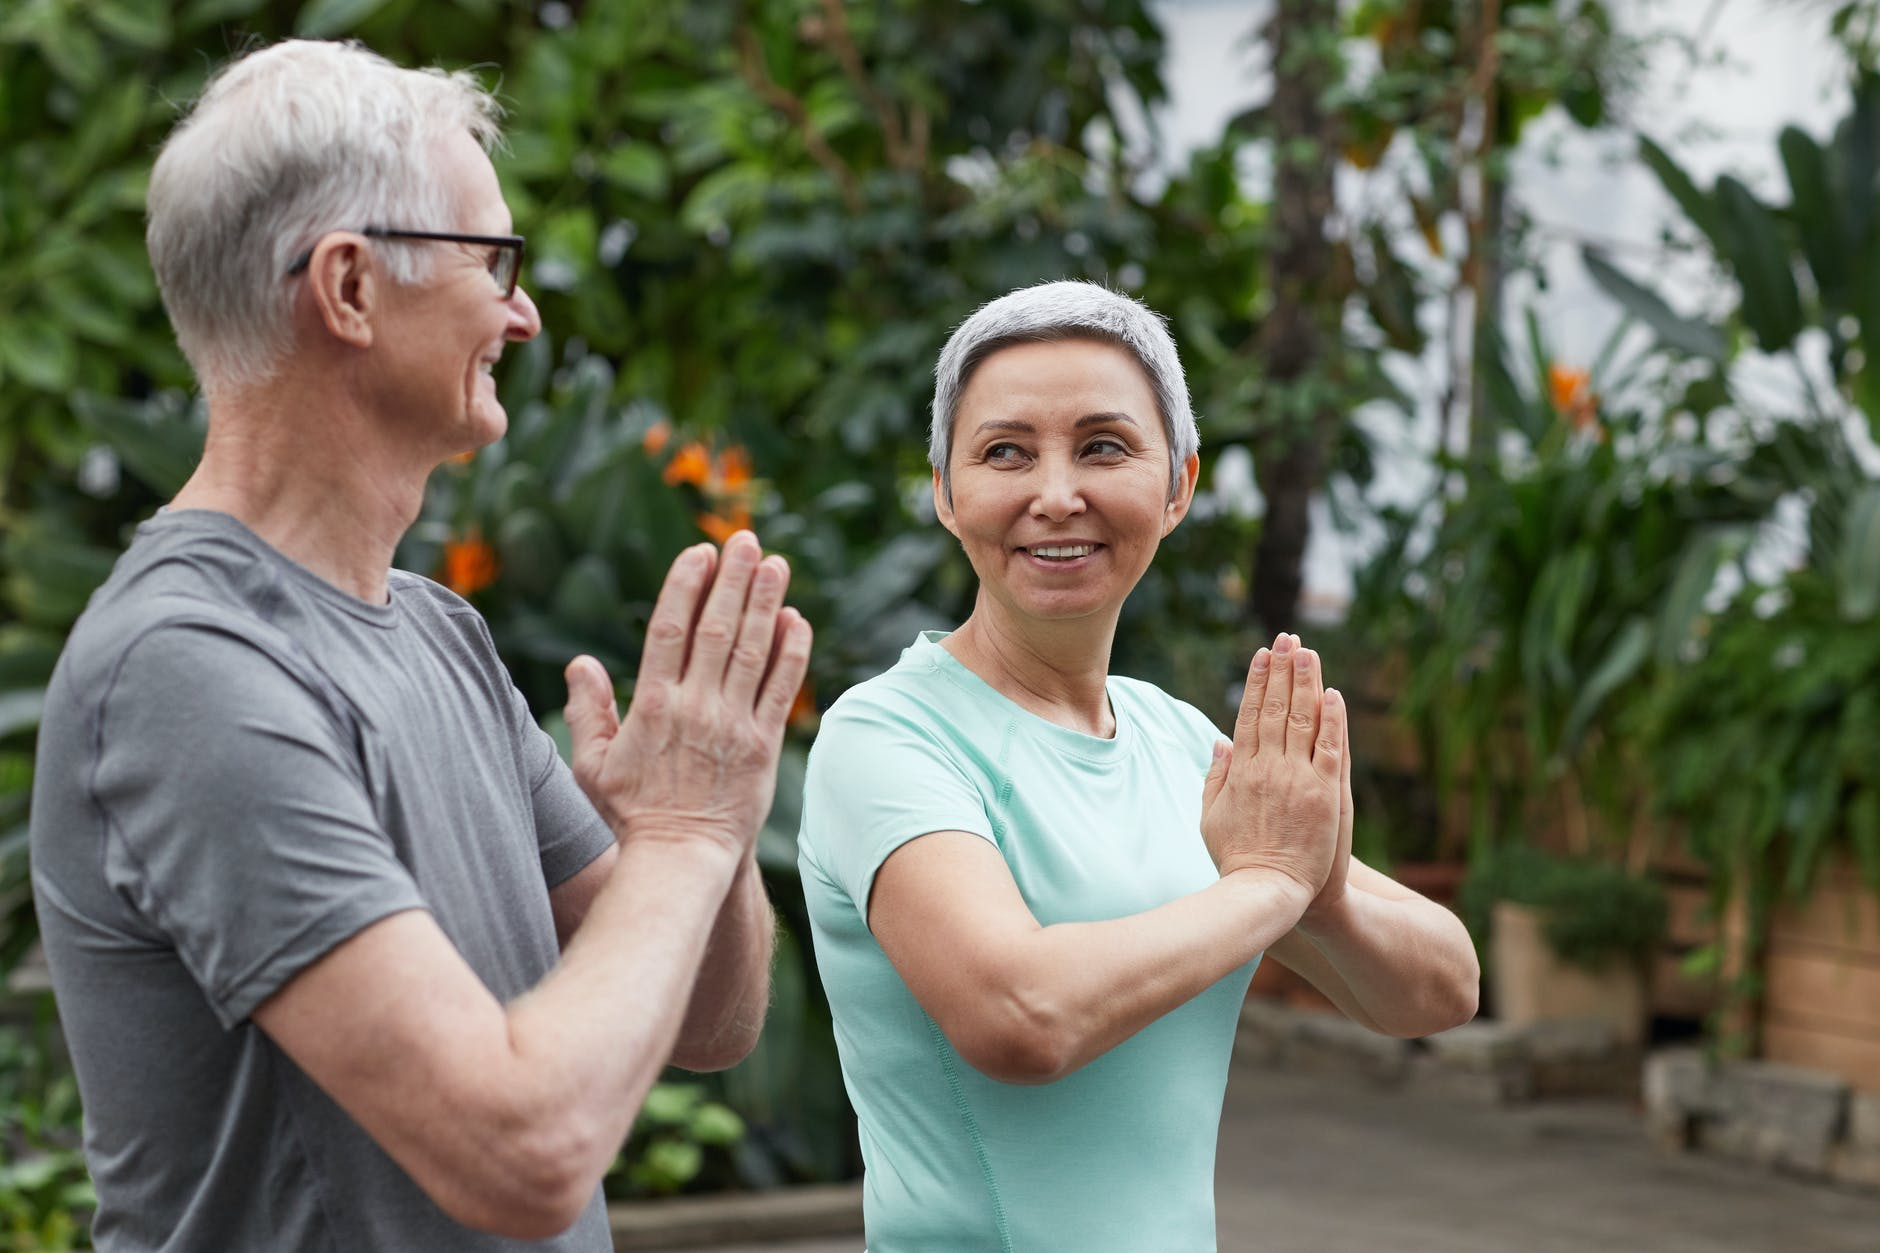 an elderly couple excercising after epat for lower back pain